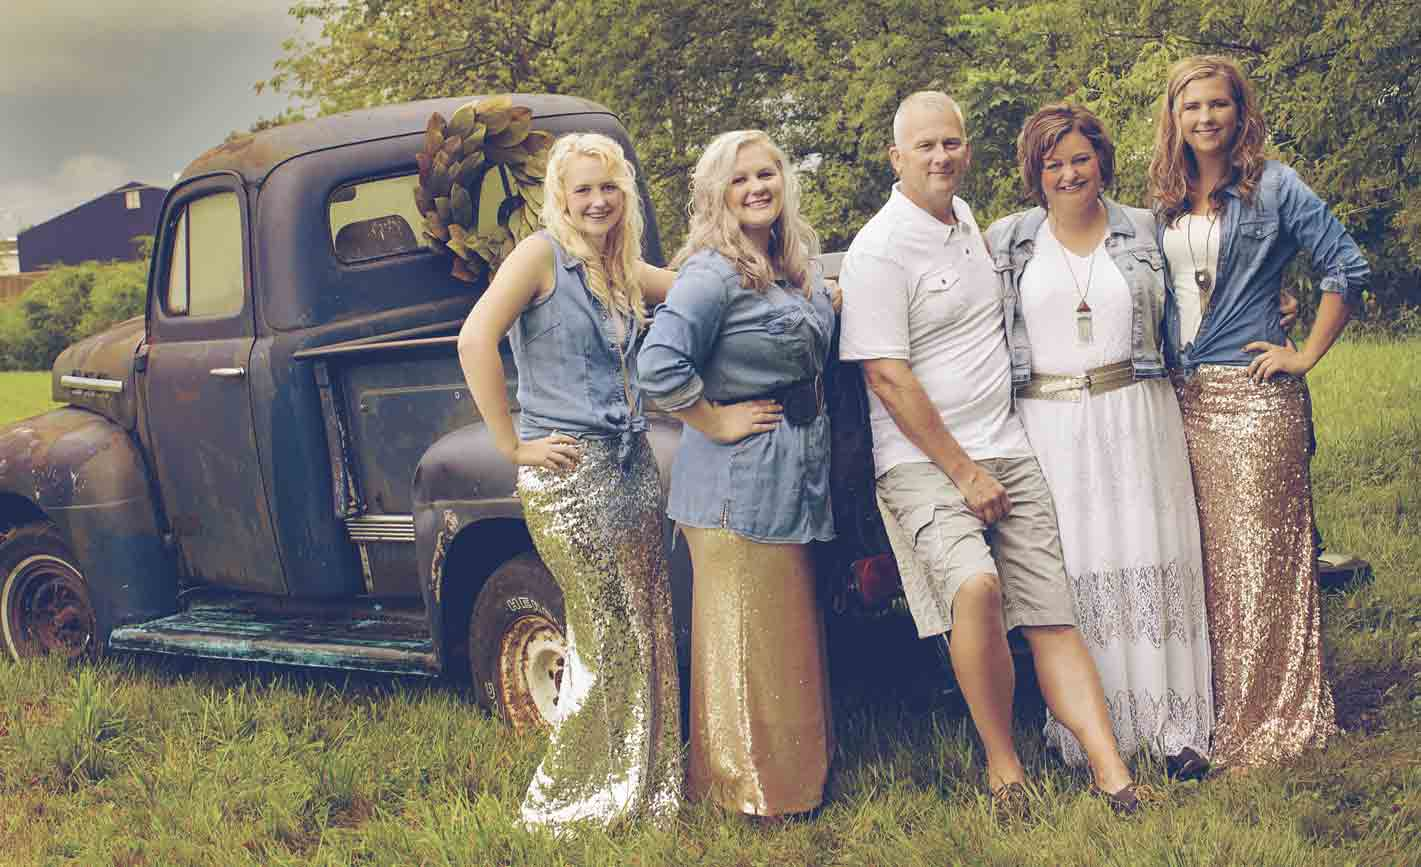 When Chris Bemiss (second from right) of West Union was diagnosed with a meningioma brain tumor in February, her life was flipped upside down. Now, after undergoing surgery and with radiation treatment in the future, Bemiss credits her loving family, including (l-r) Brooke, Brittany,...